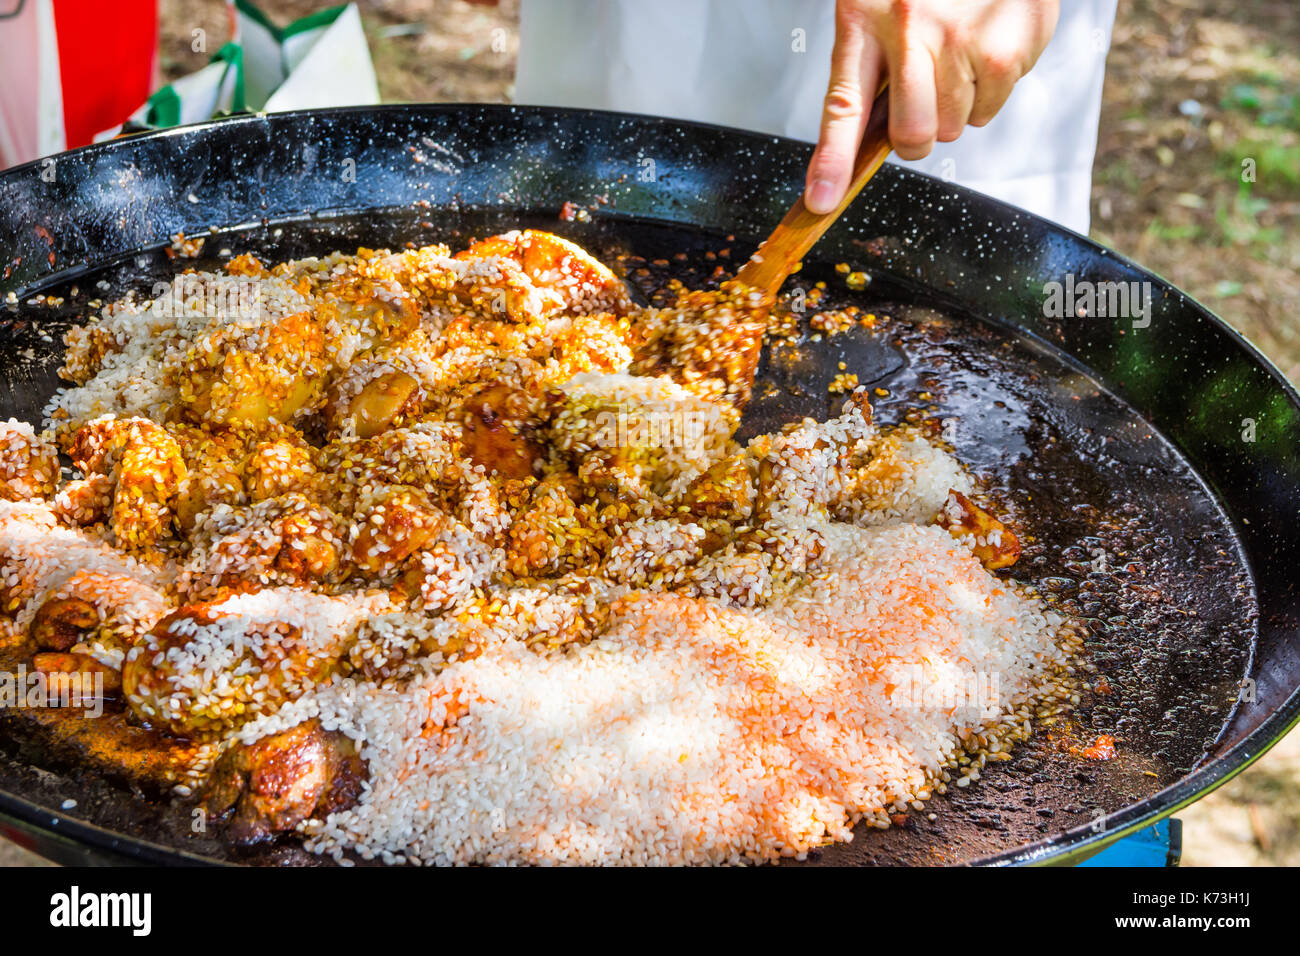 Man's hand holding wooden turner, mixing uncooked rice with fried chicken meat tomato sauce spices. Preparing paella or jambalaya. Outdoors, picnic, f - Stock Image